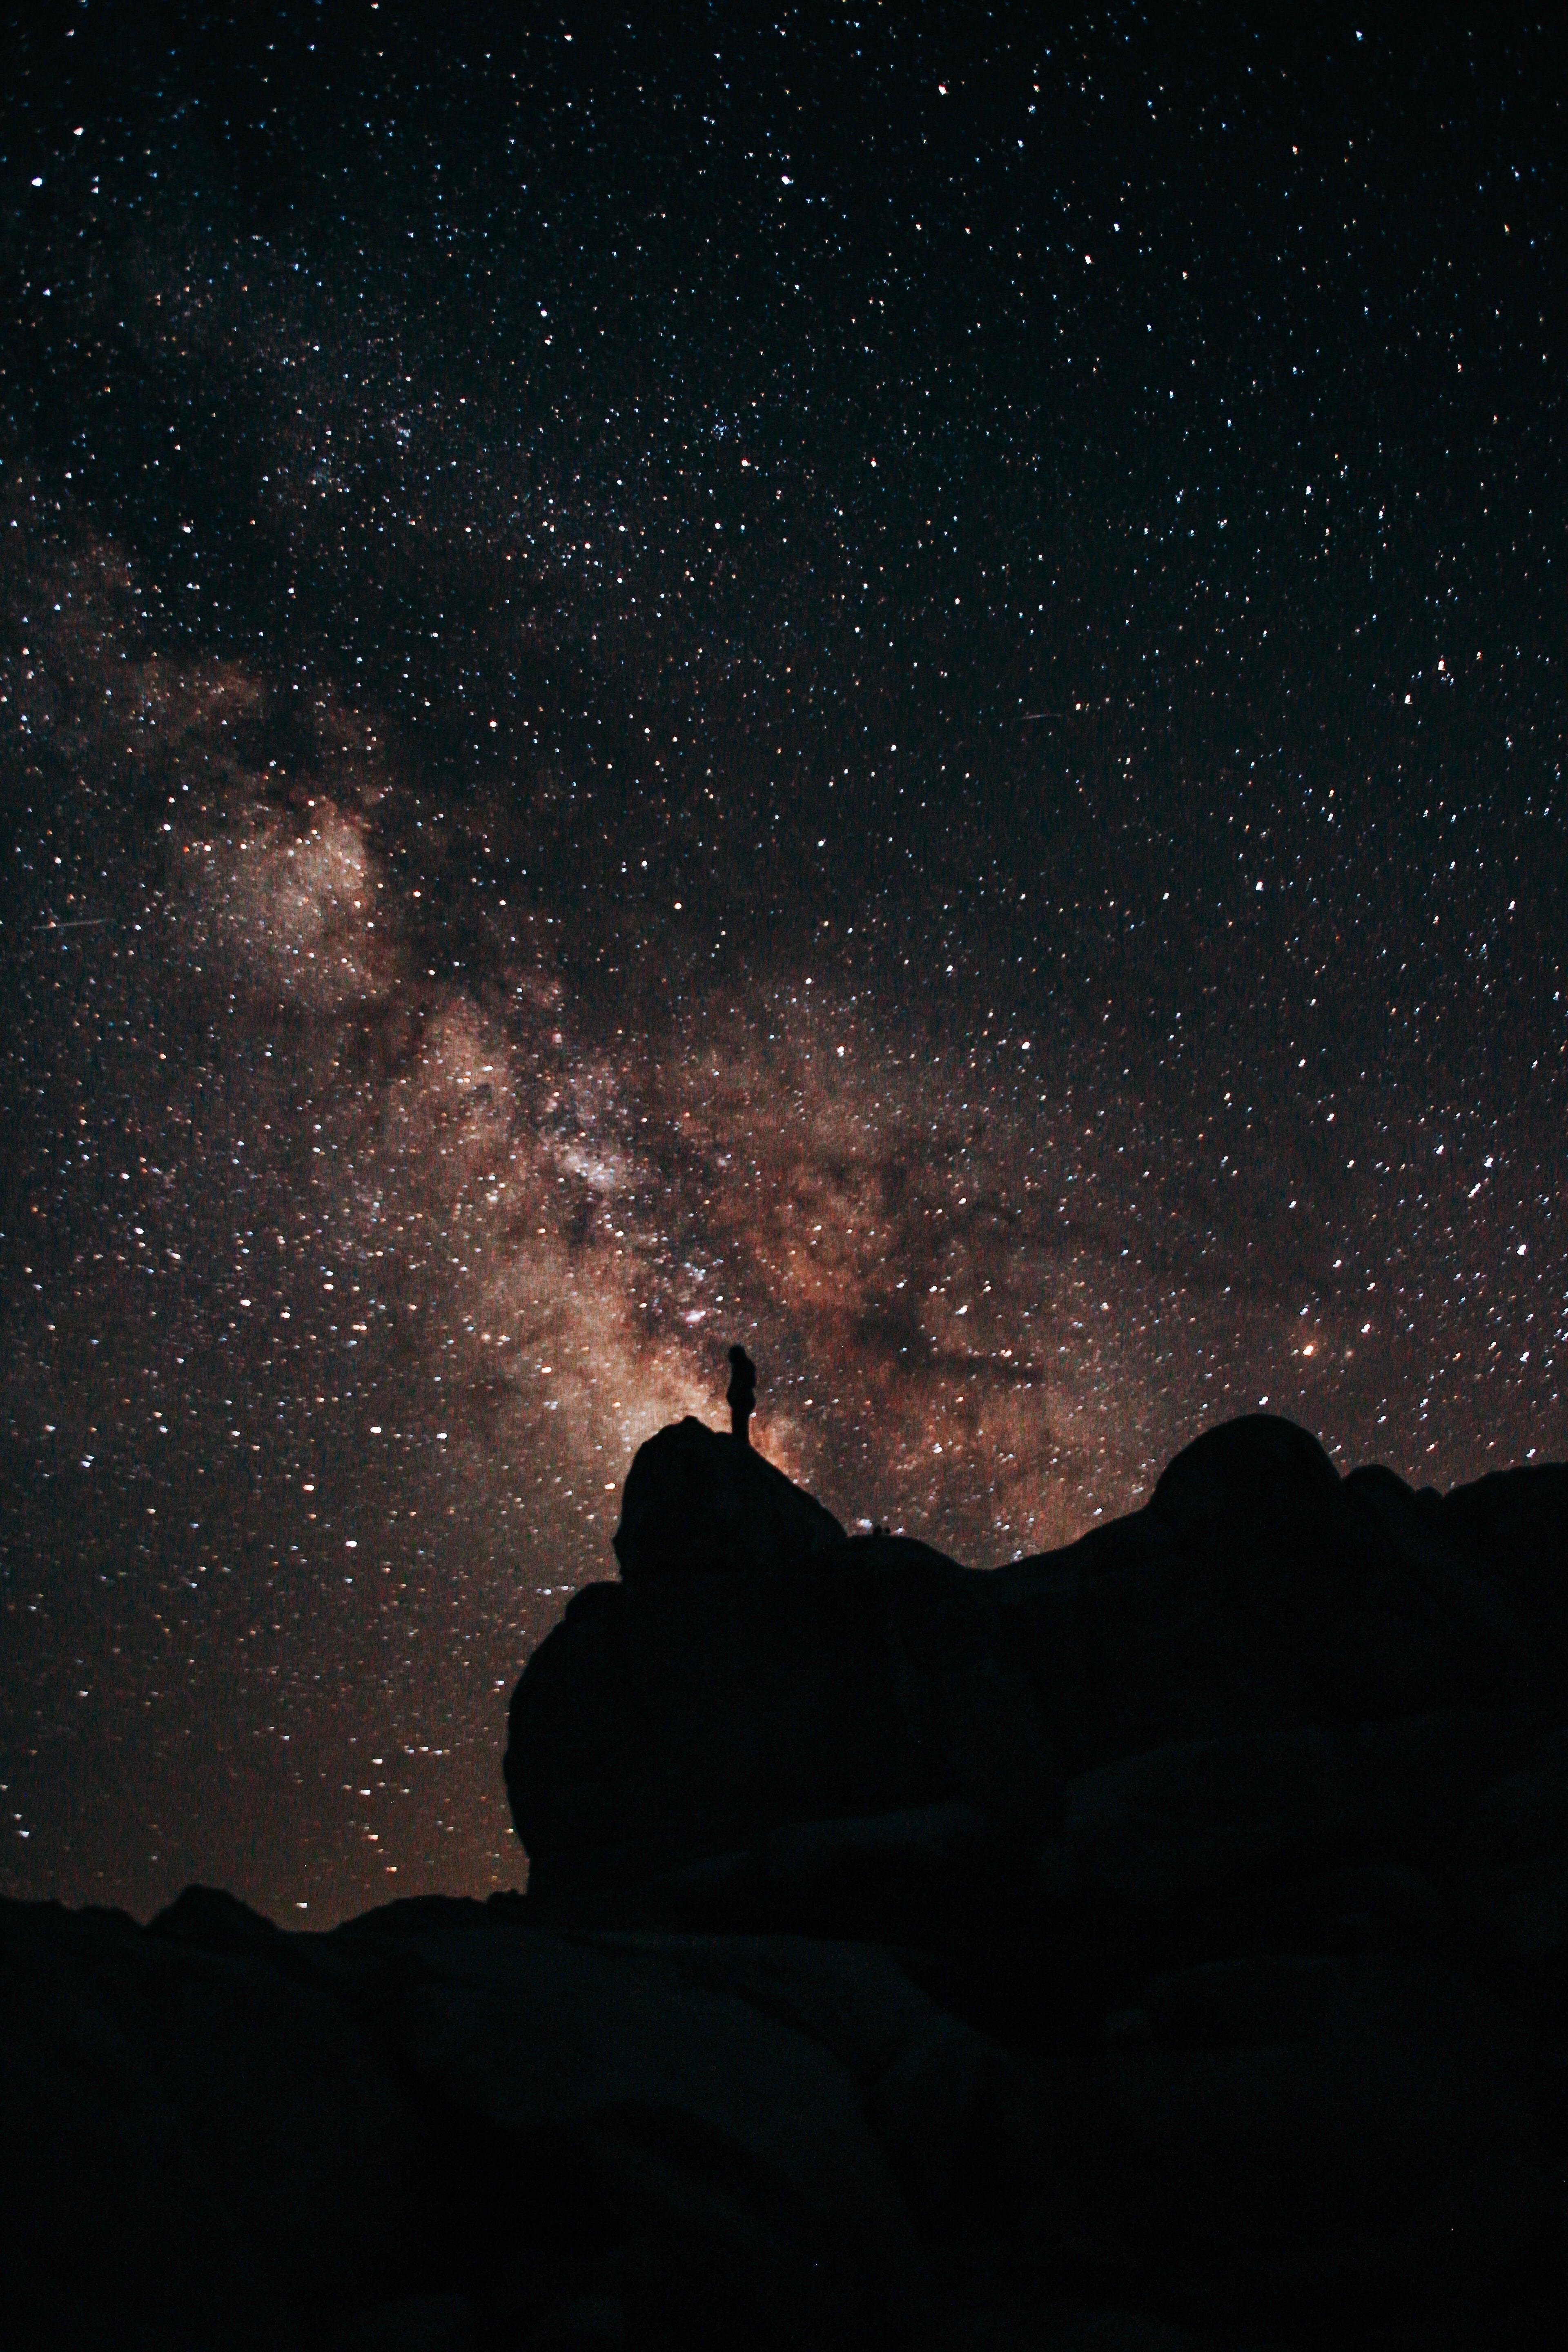 A picture of a person standing under the Milky Way at night milky way galaxy star shot wilderness